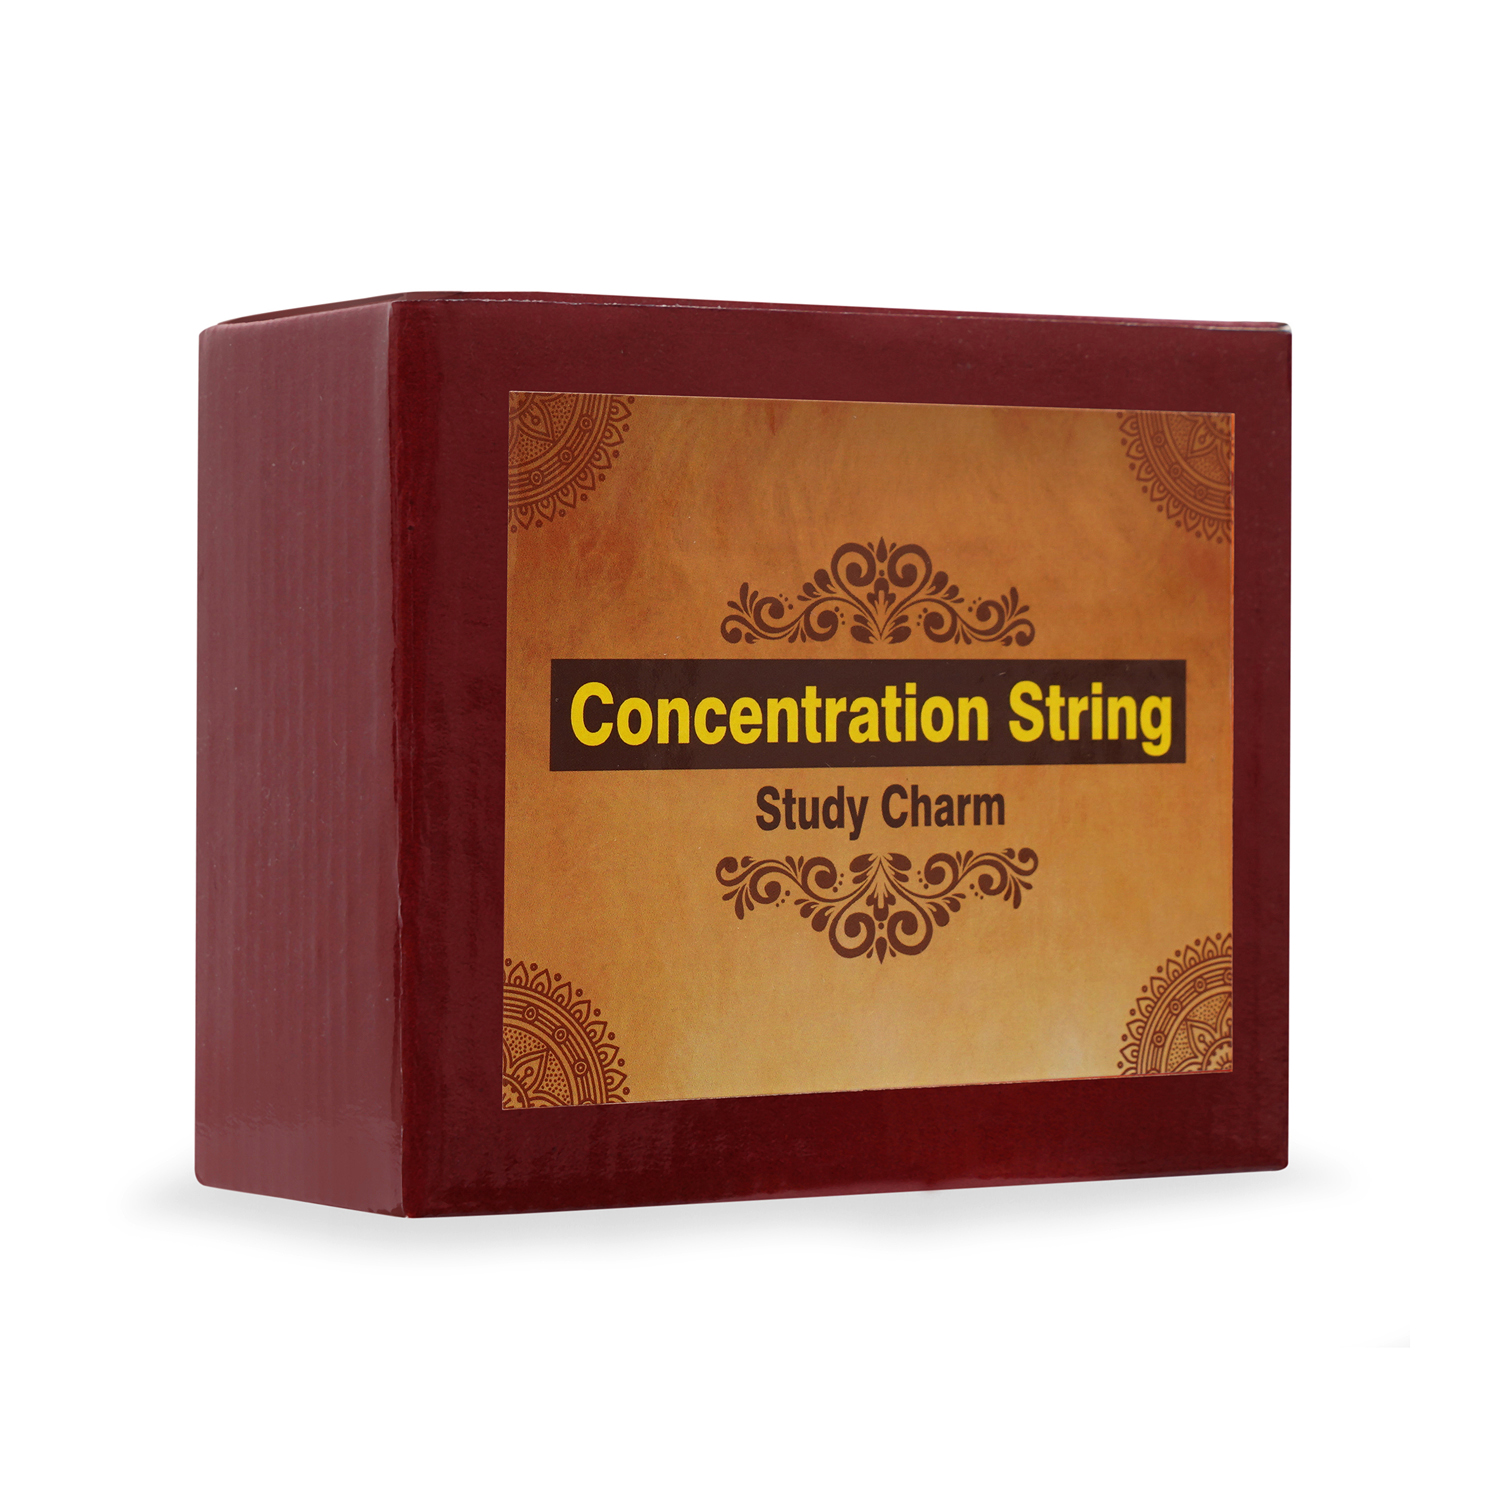 Concentration String